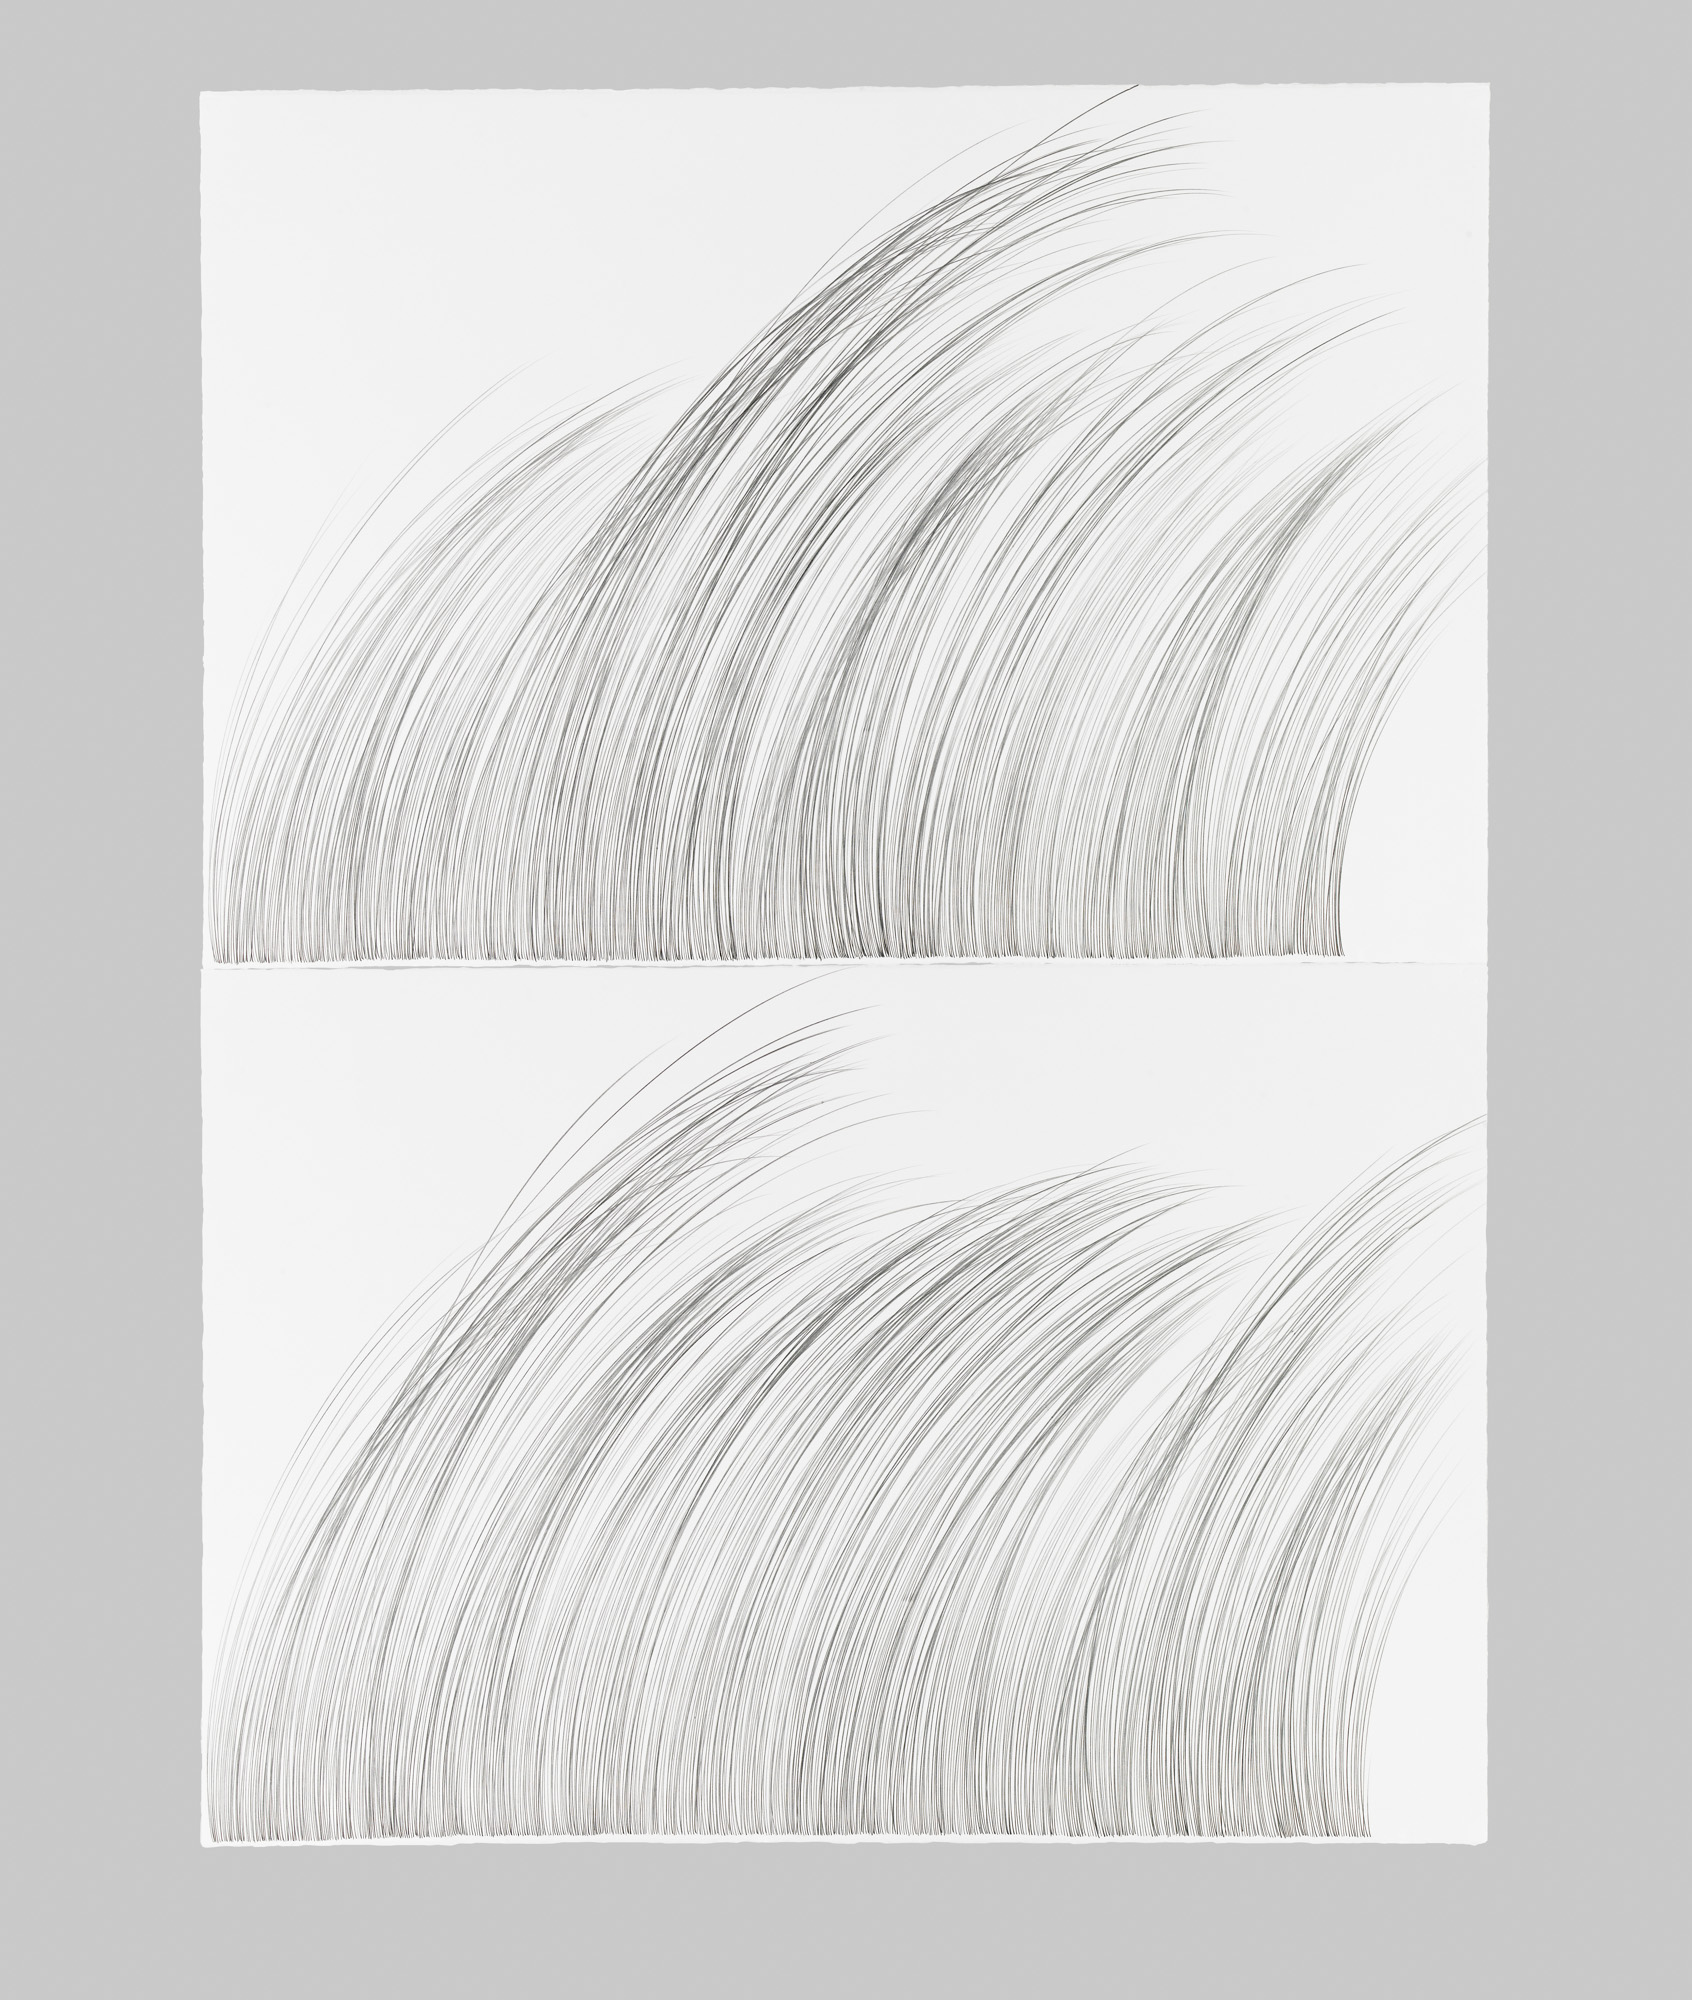 Large Grass   Graphite on cotton paper, 60 x 44 inches, diptych, 2015